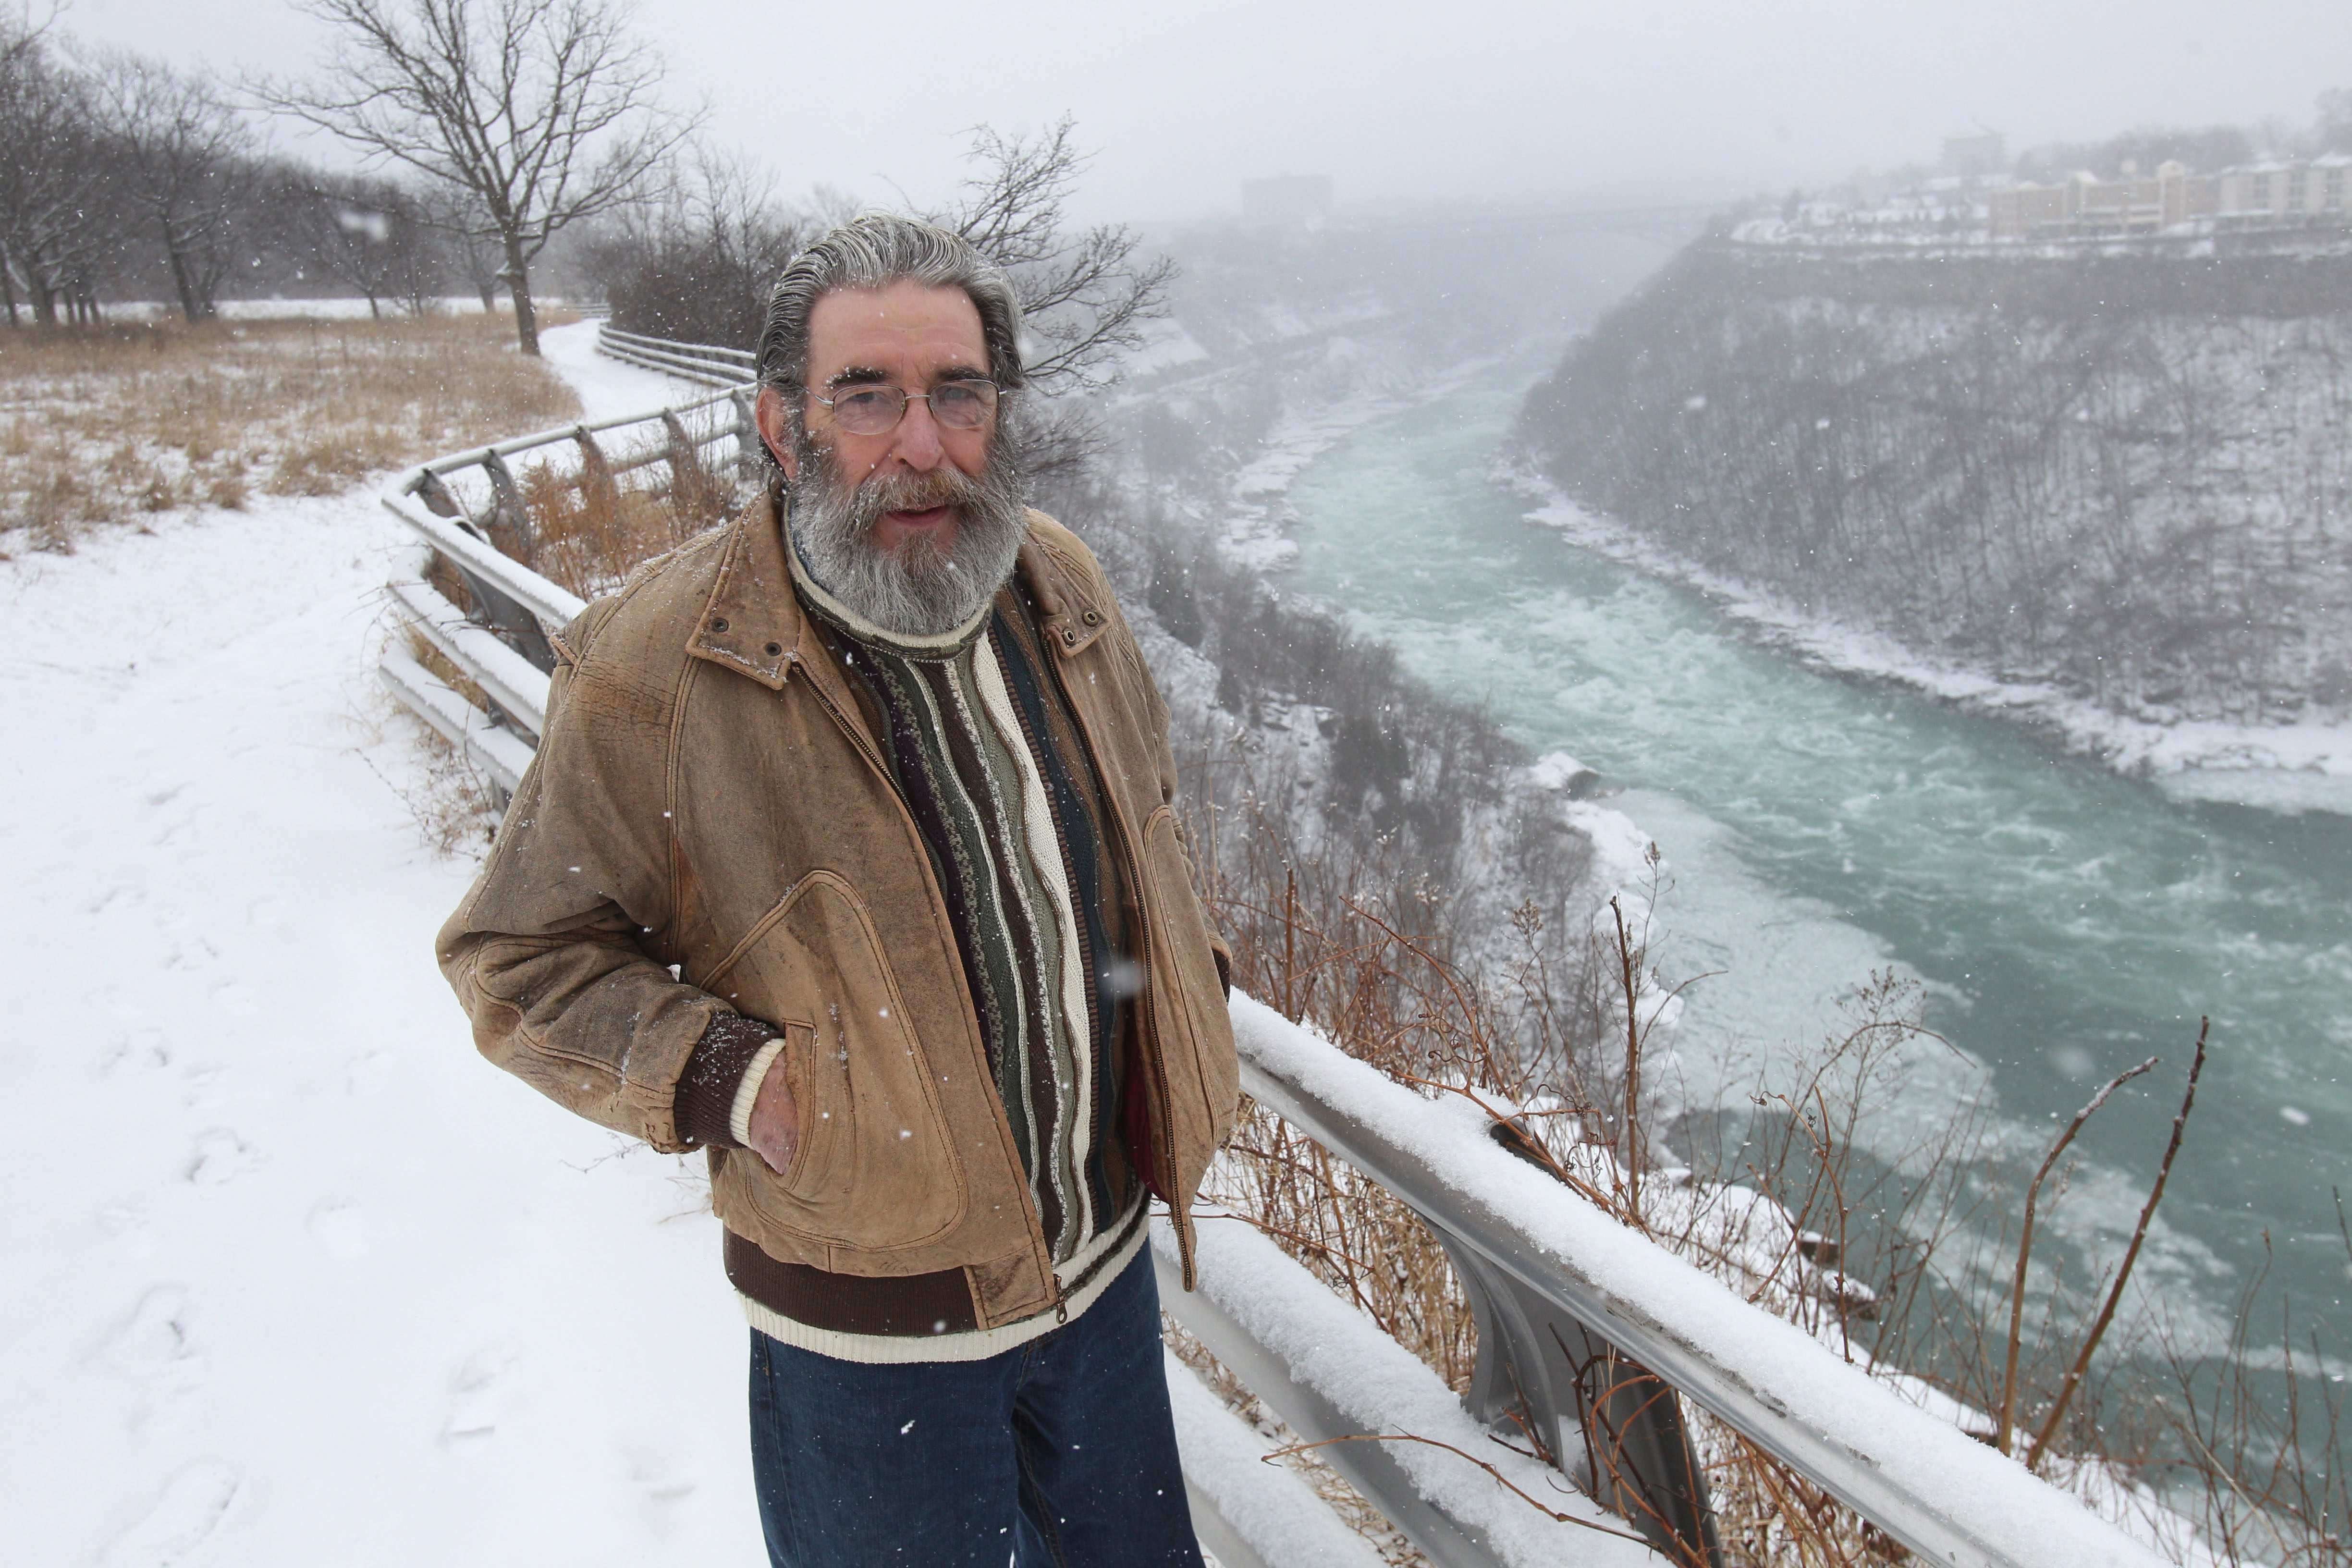 E.R. Baxter III, of Ransomville, is a poet who often writes about the Niagara River. Here he walks in Whirlpool State Park in Niagara Falls.